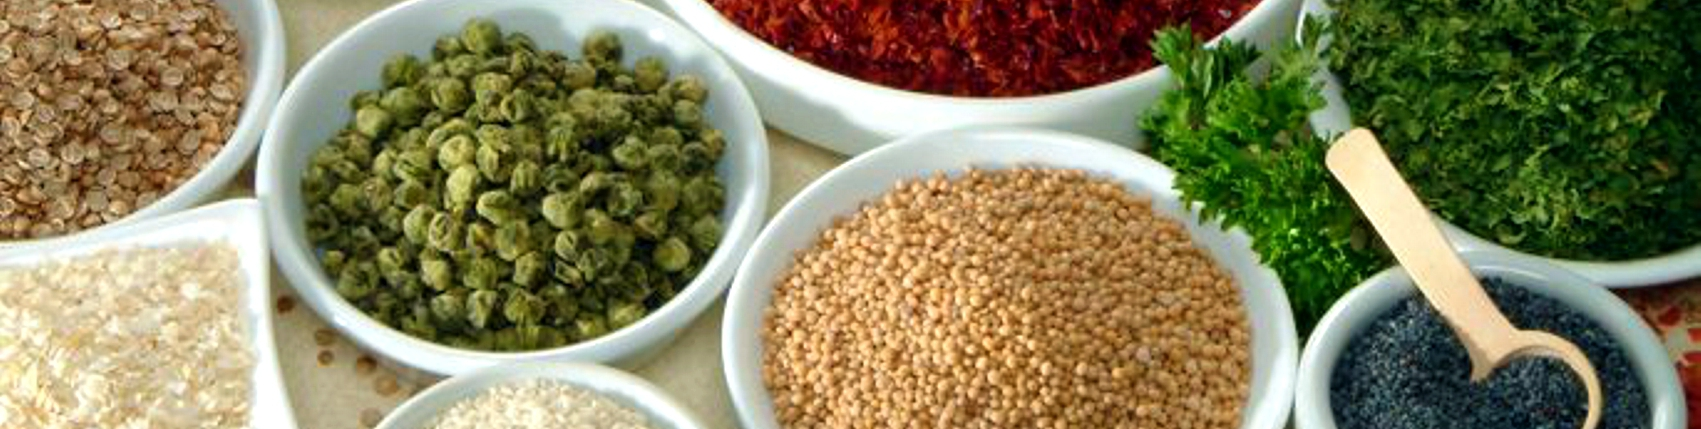 Earlee Products bowls filled with Spices